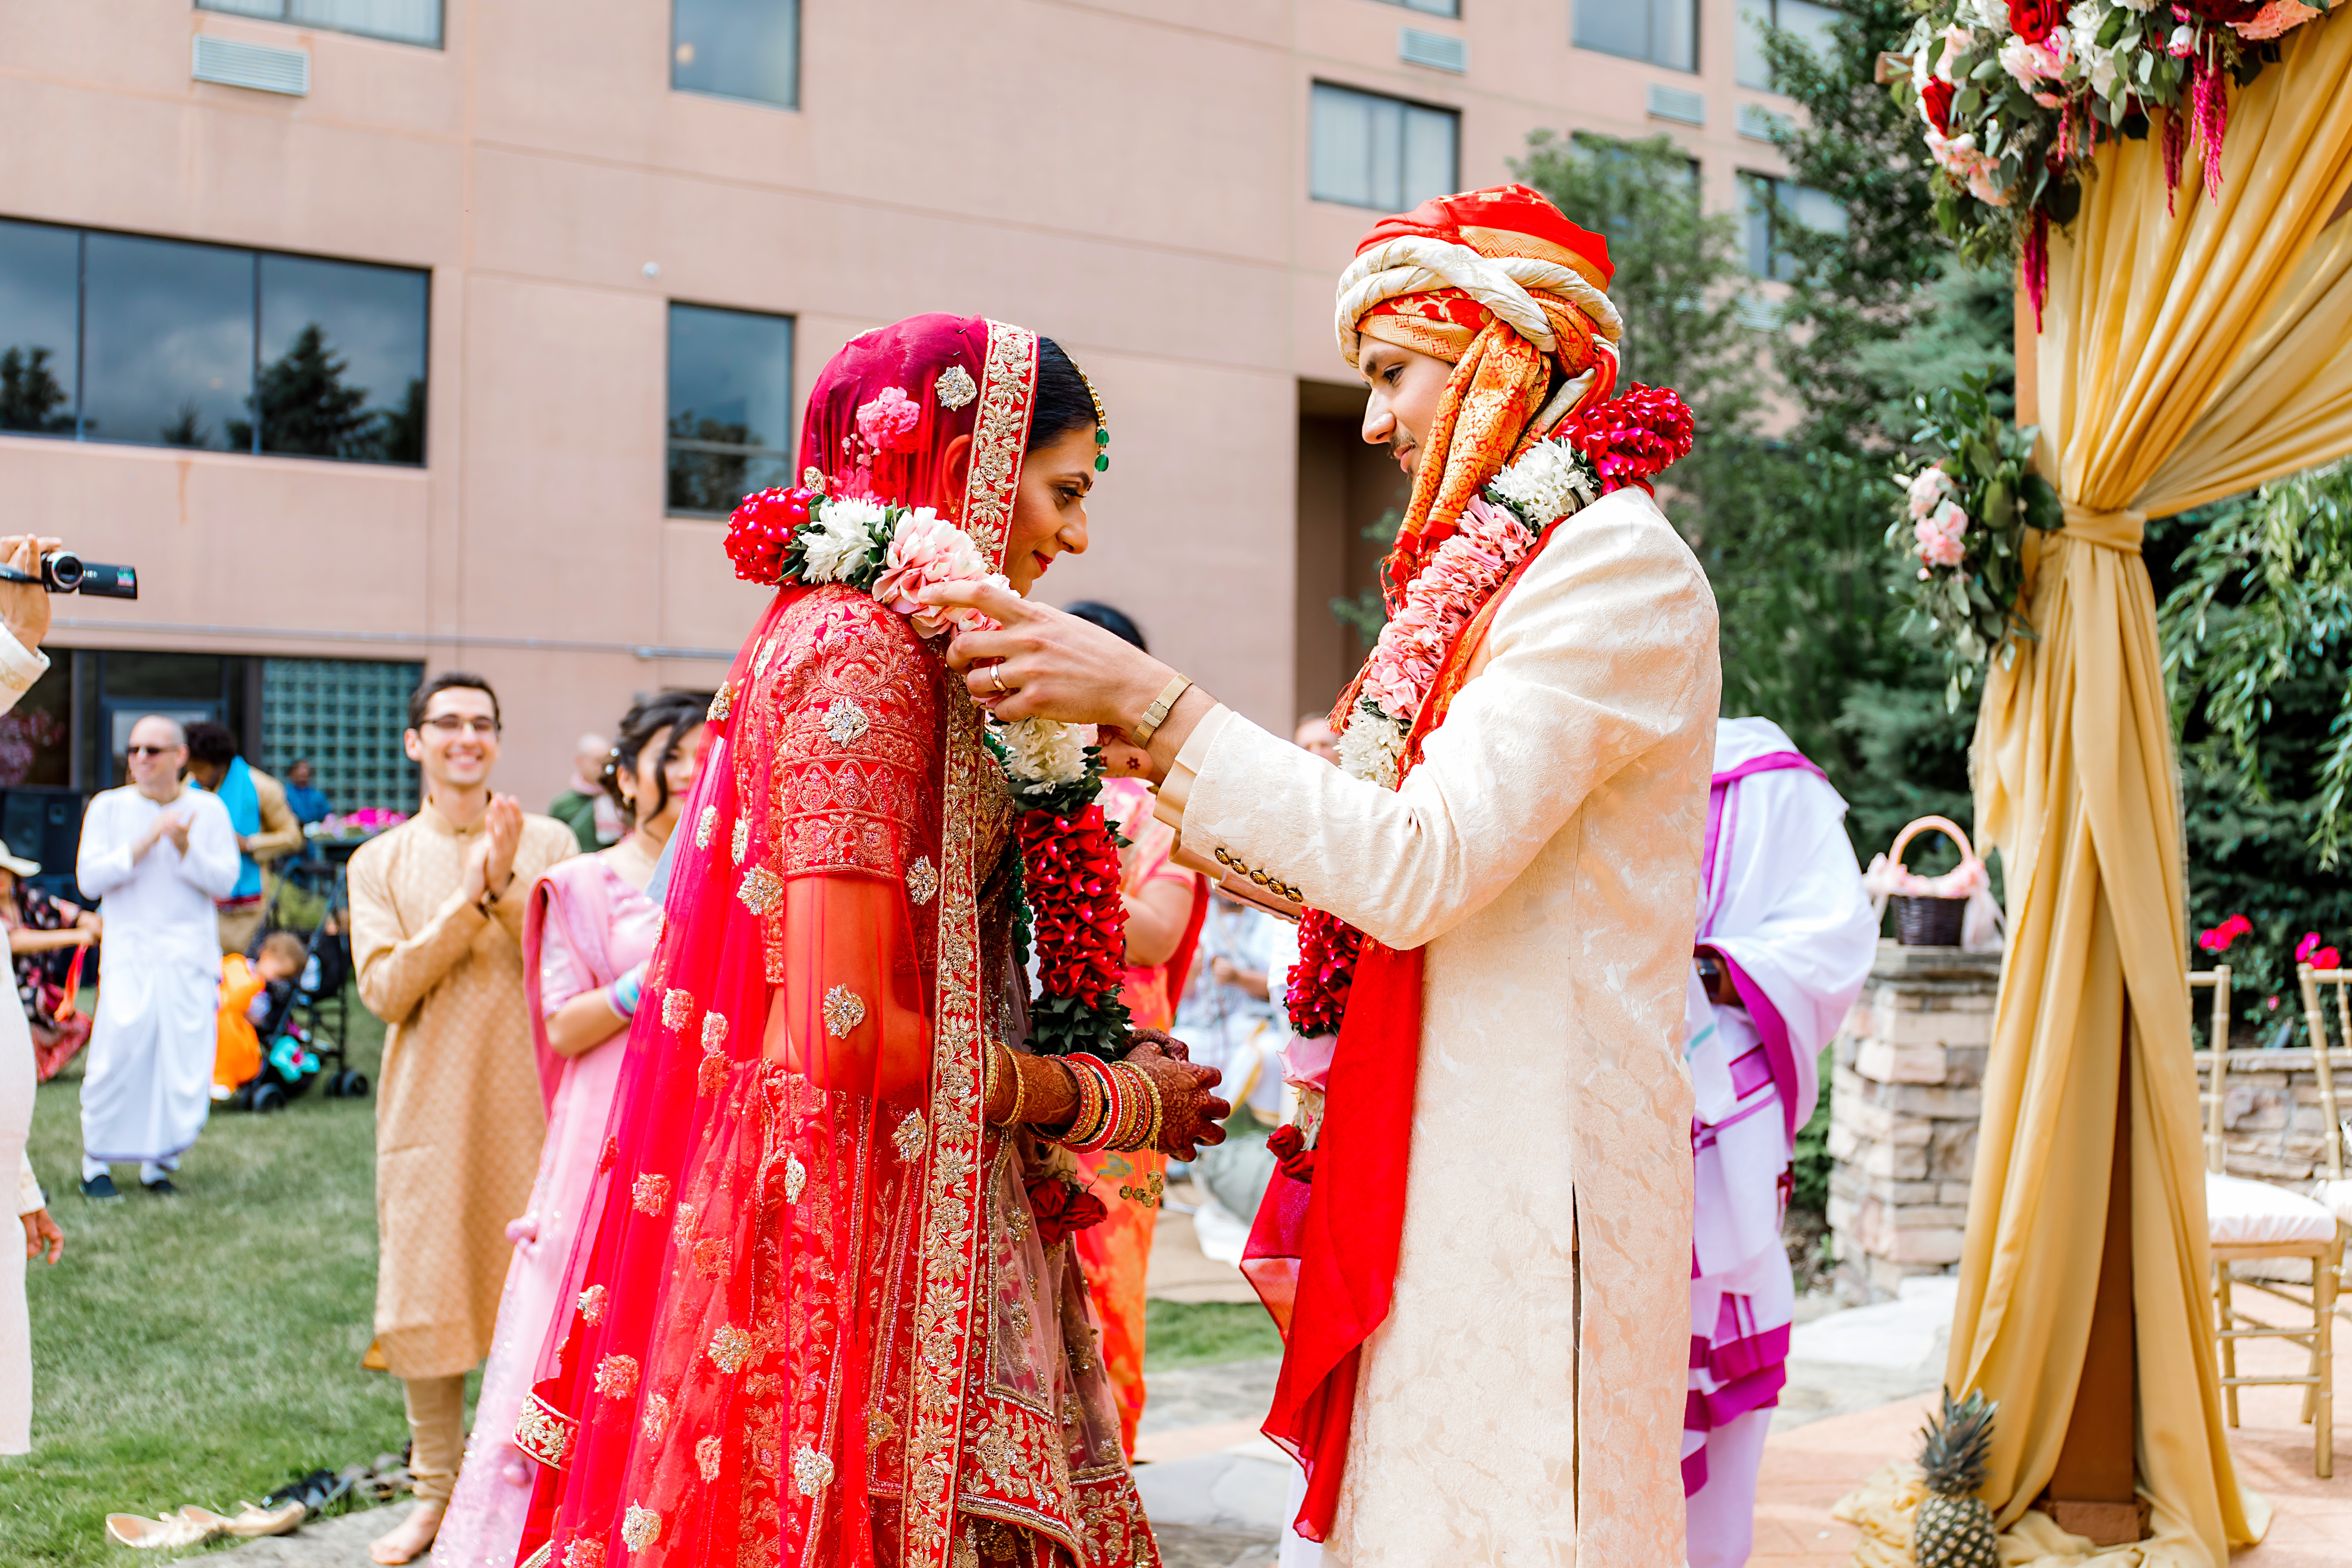 Luxury Indian wedding photographer in America